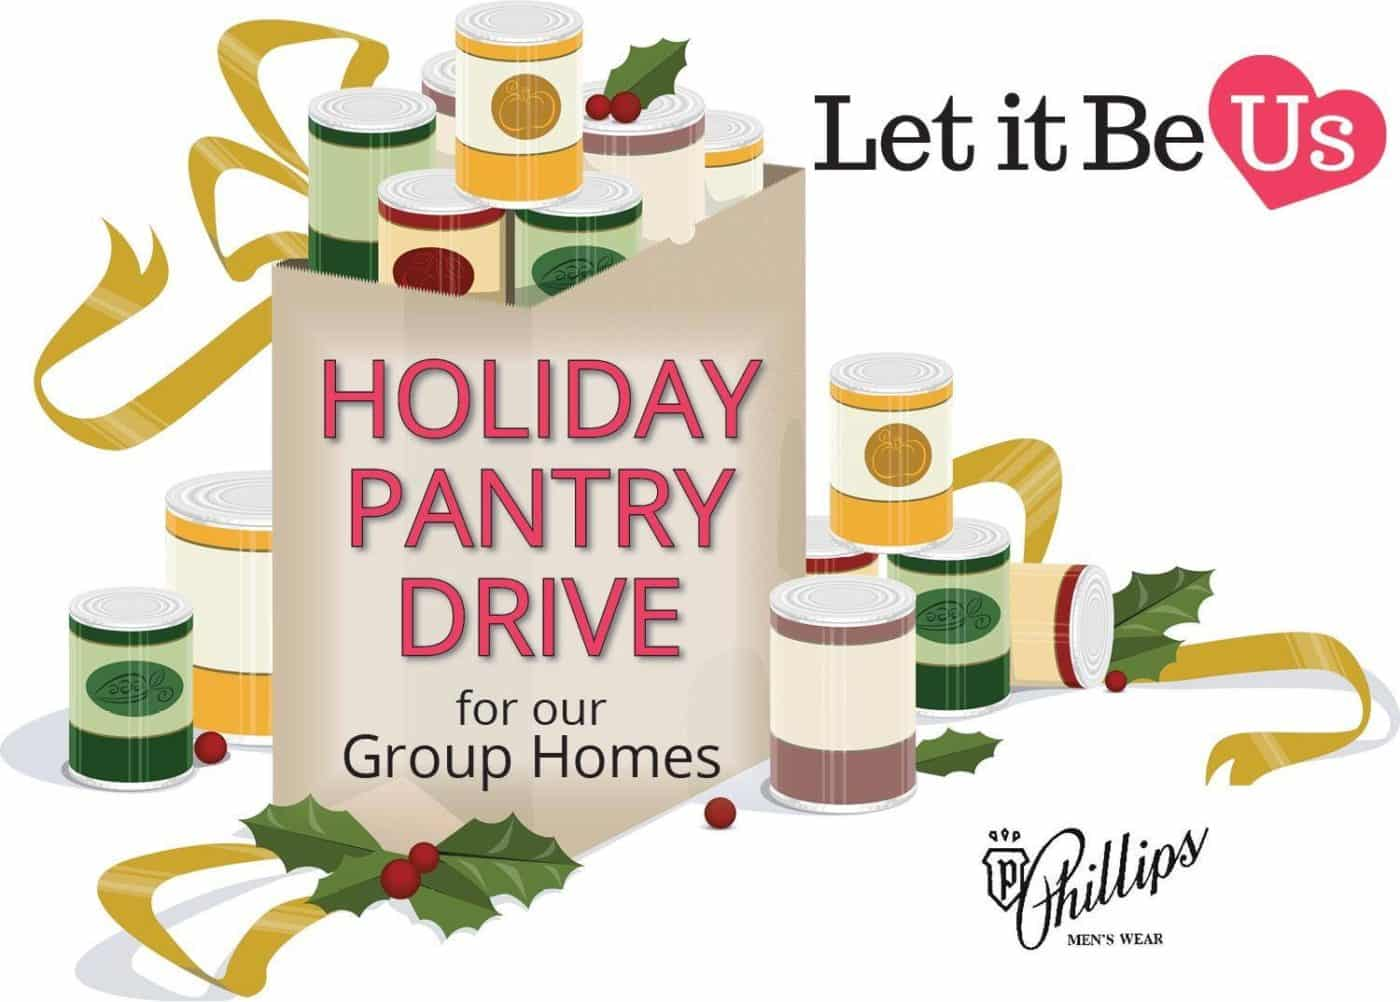 Donation clipart holiday food. Pantry stocking drive for